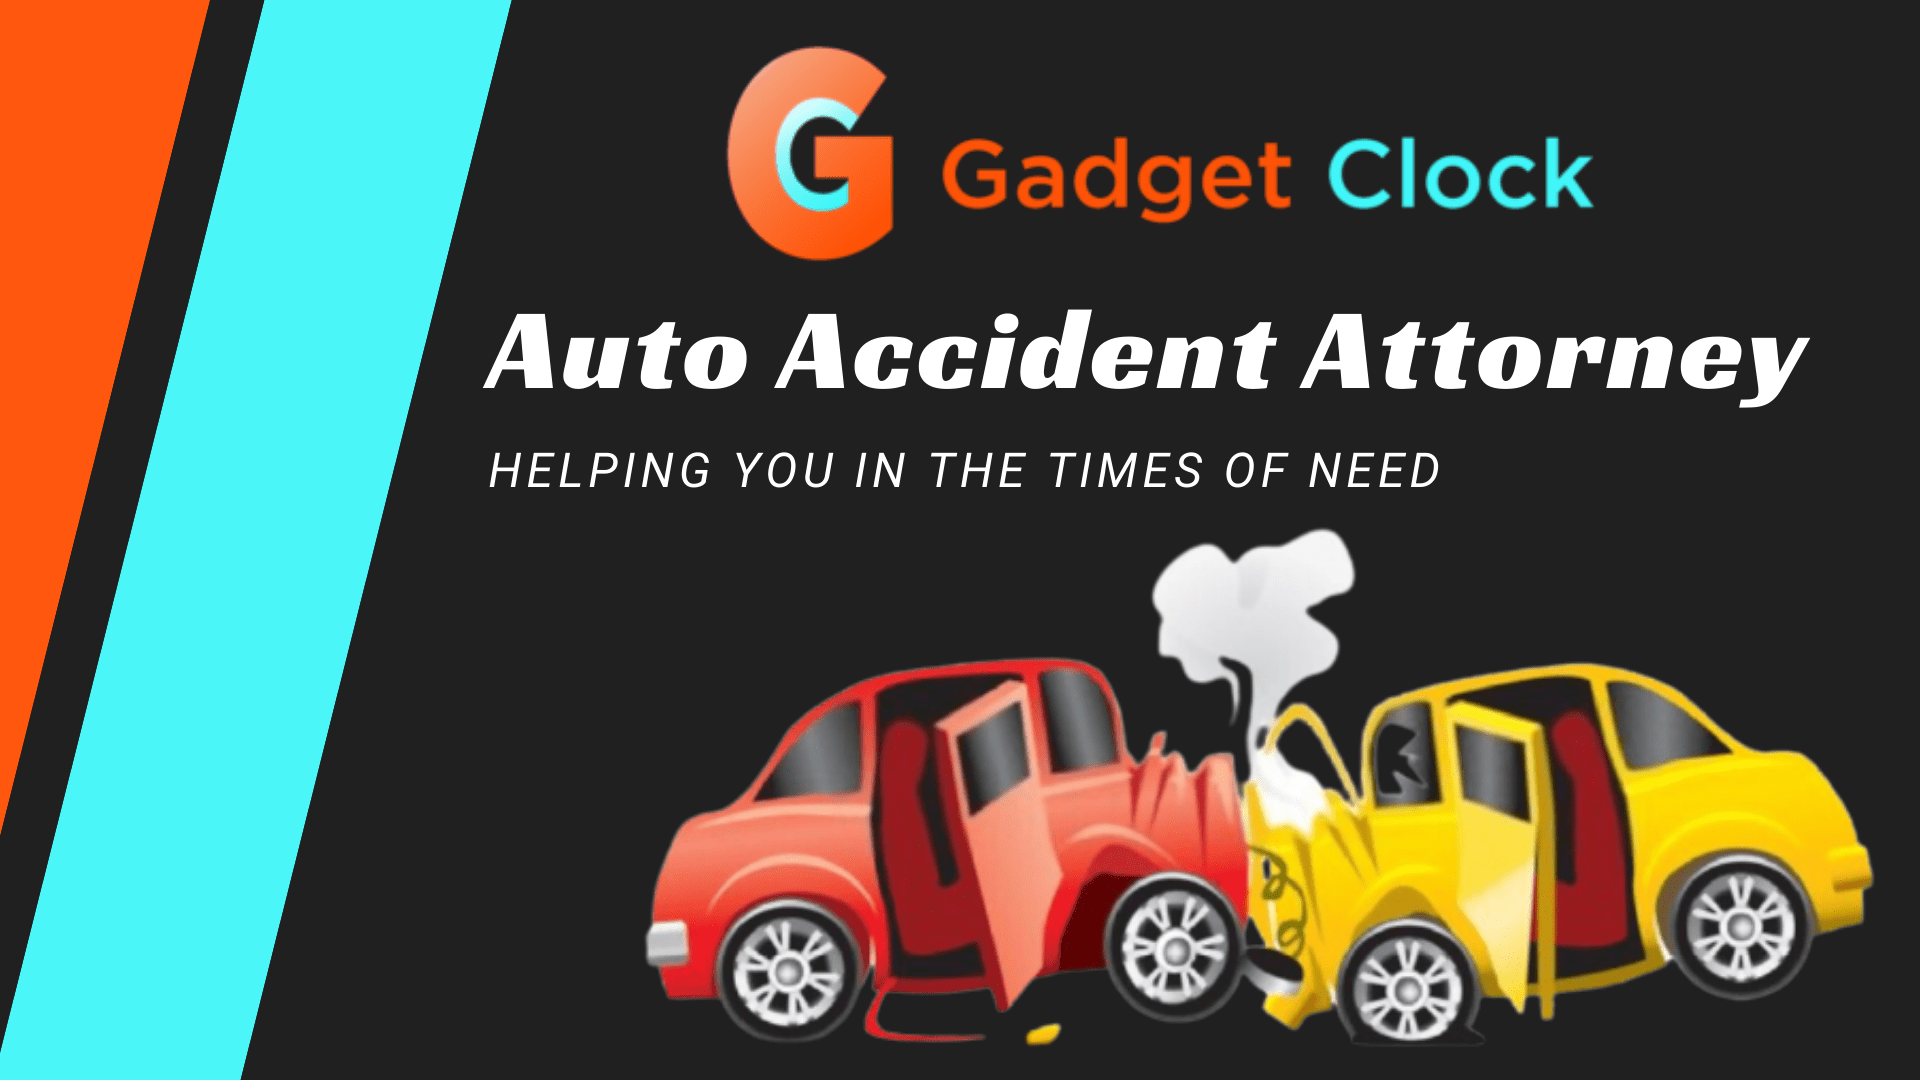 Auto Accident Attorney California now in 2021- Helping you in the Times of Need